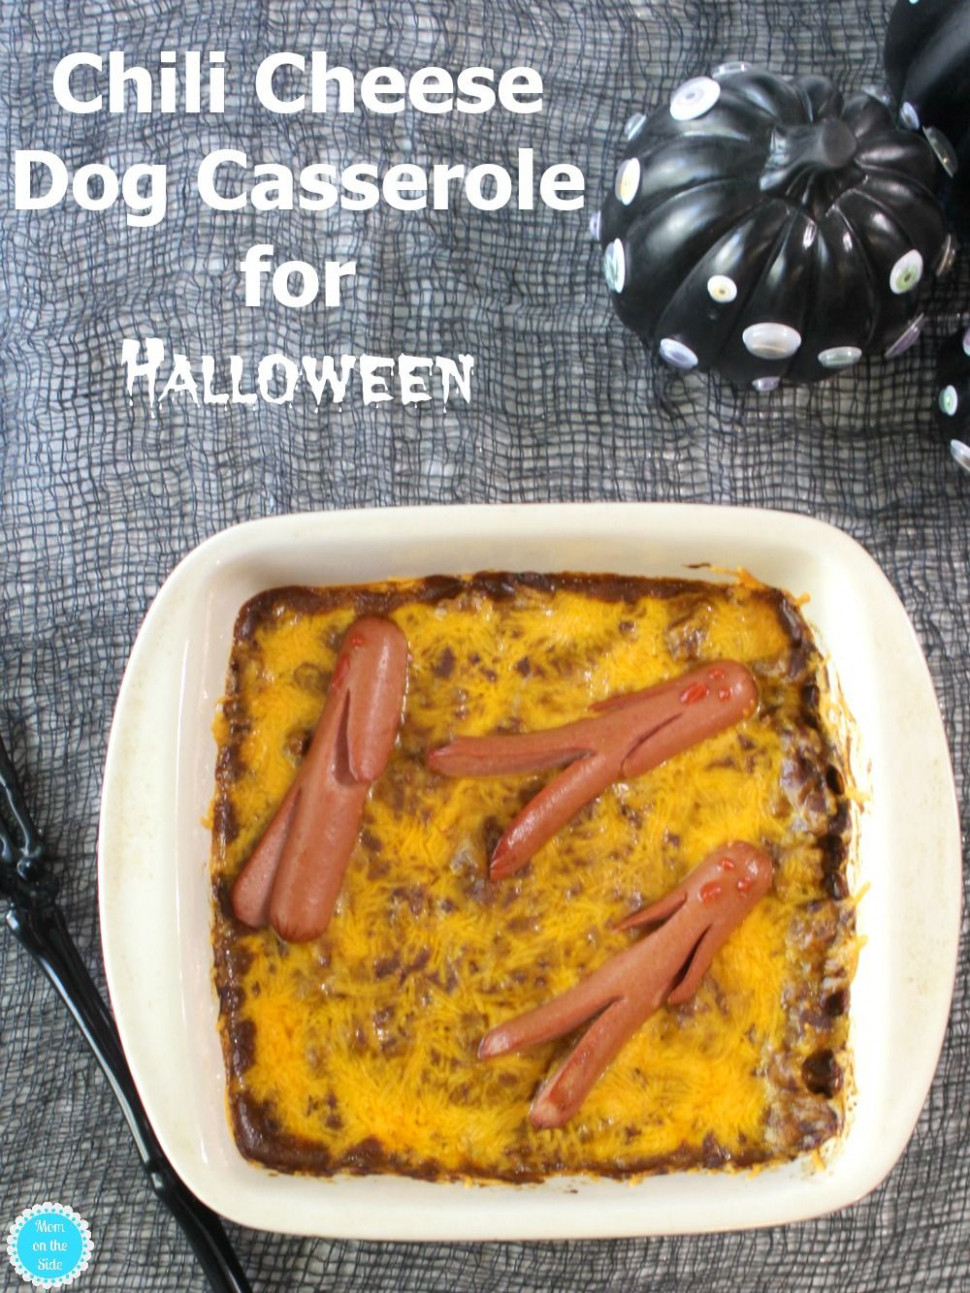 Chili Cheese Dog Casserole for Halloween - recipes halloween dinner